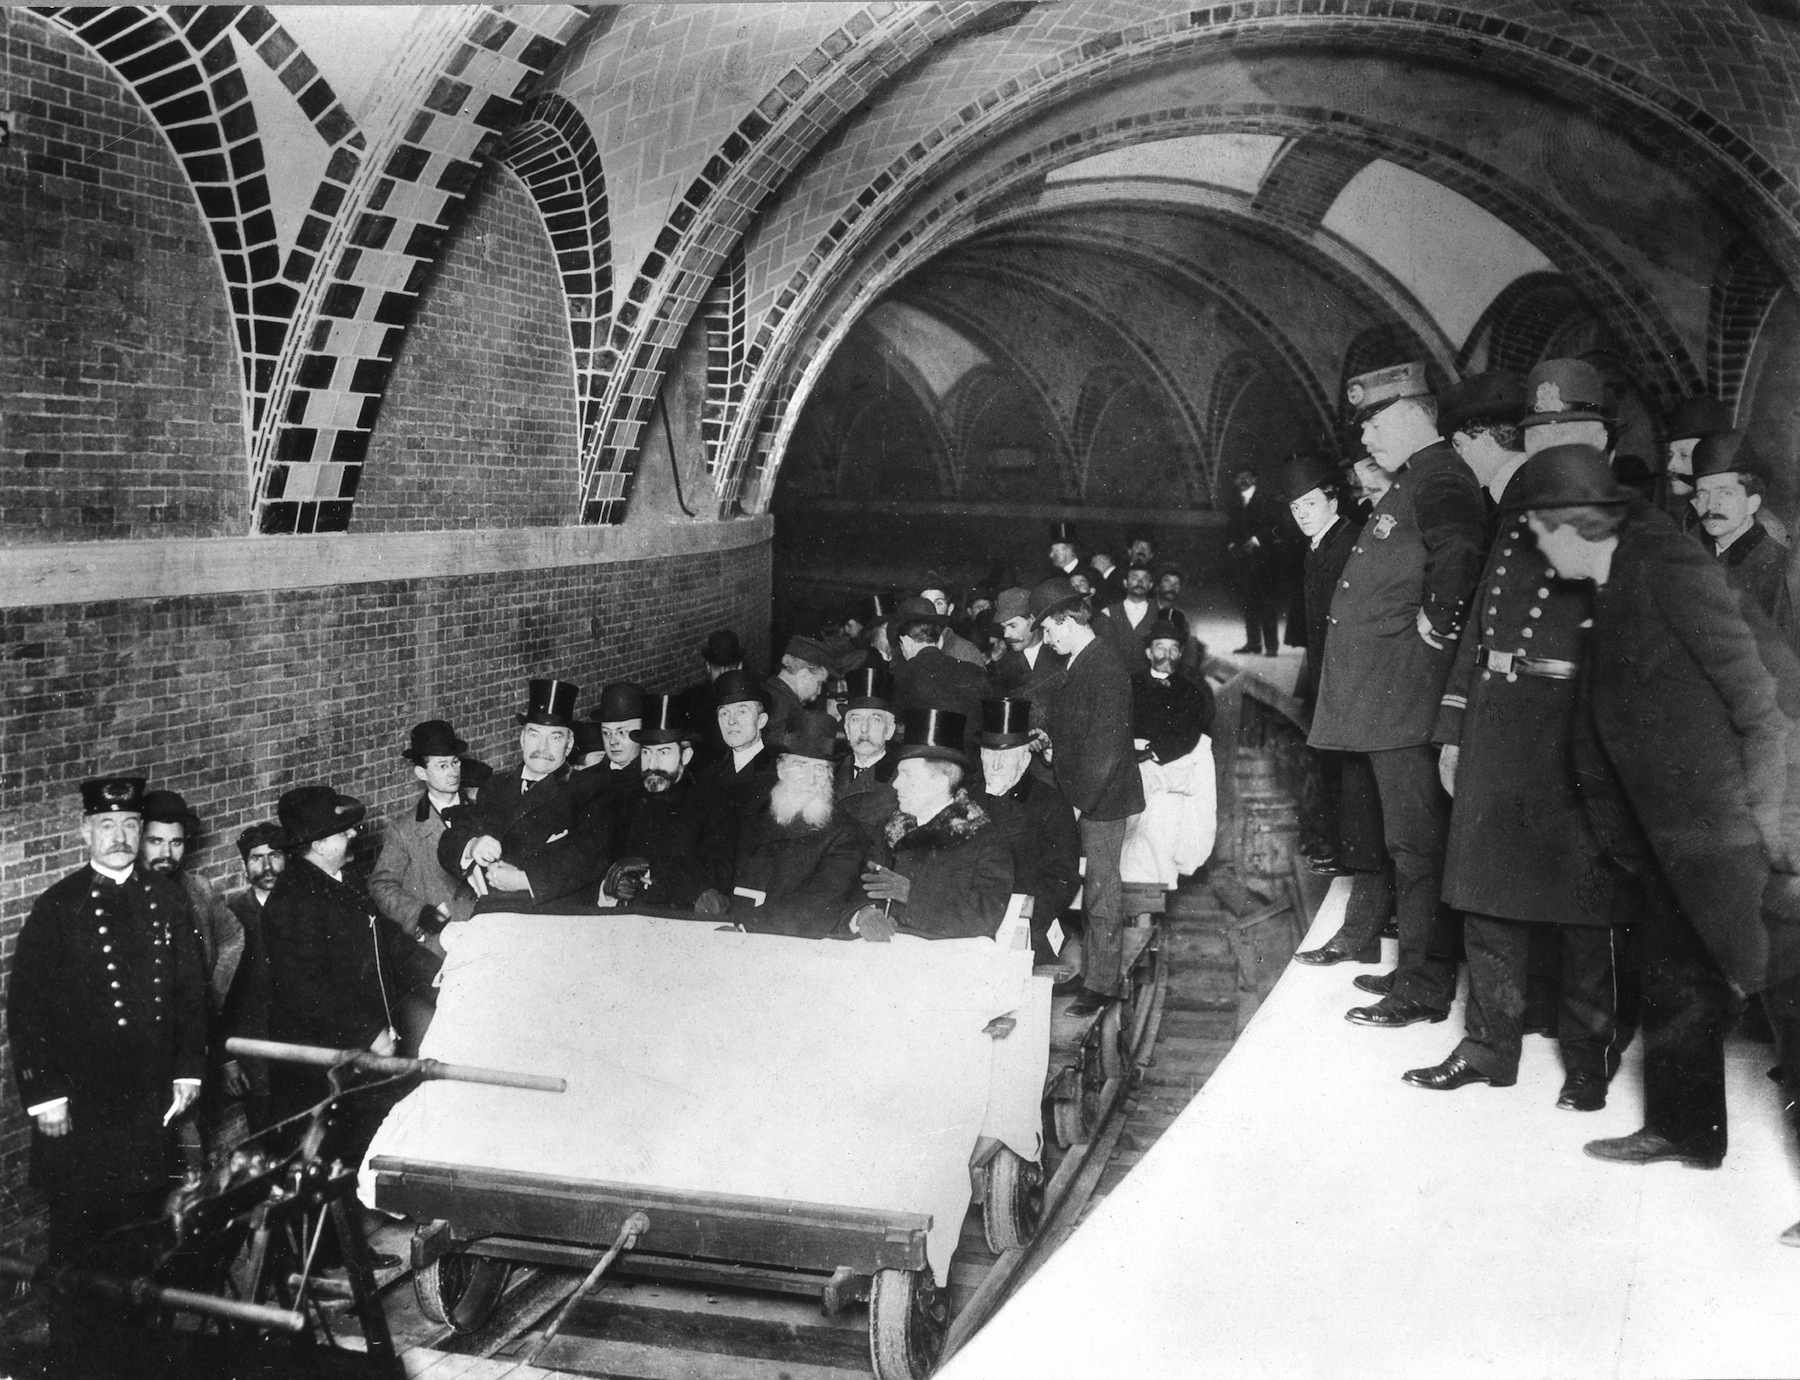 The opening of the first subway in New York, Oct. 27, 1904.